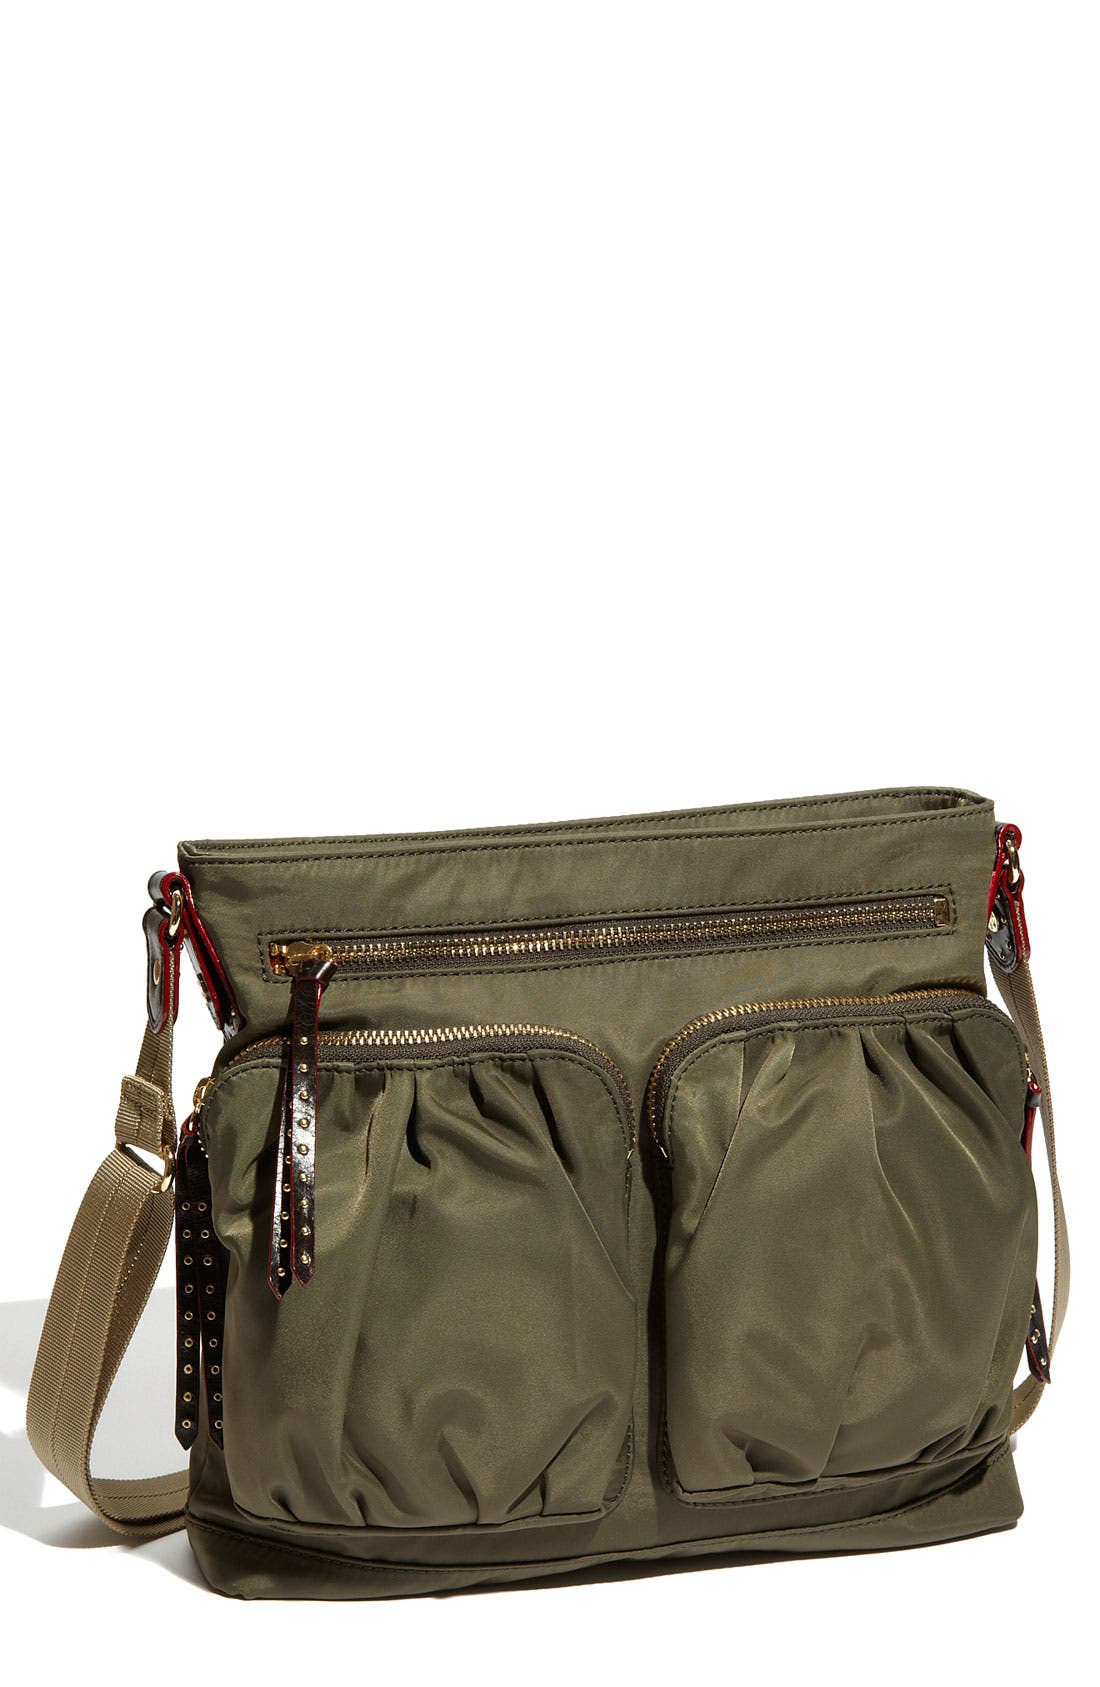 M Z Wallace Mia Crossbody Bag,                             Main thumbnail 5, color,